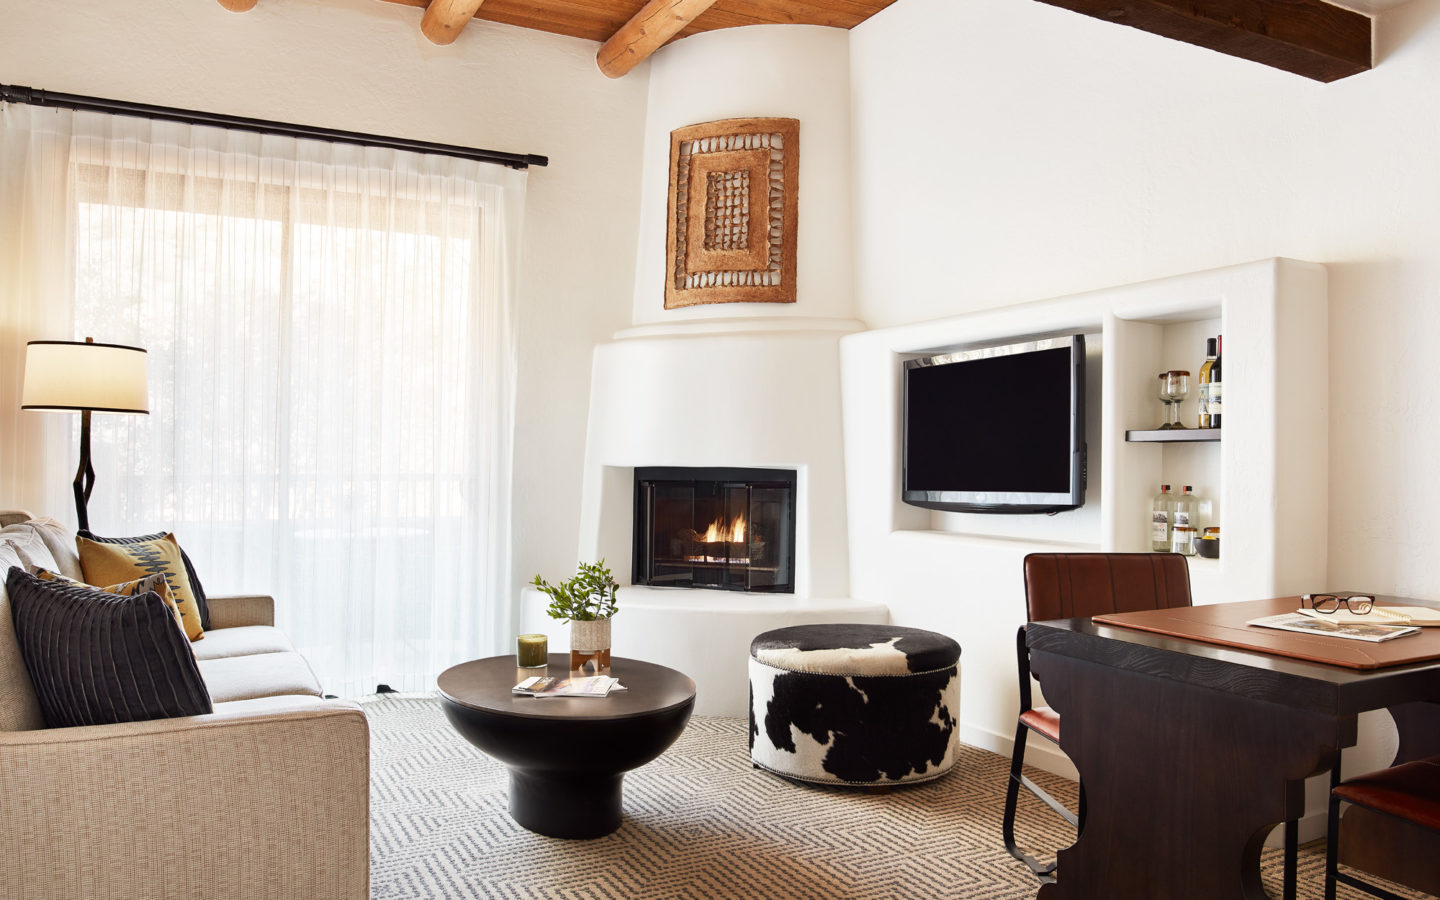 black and white fireplace near white window curtain